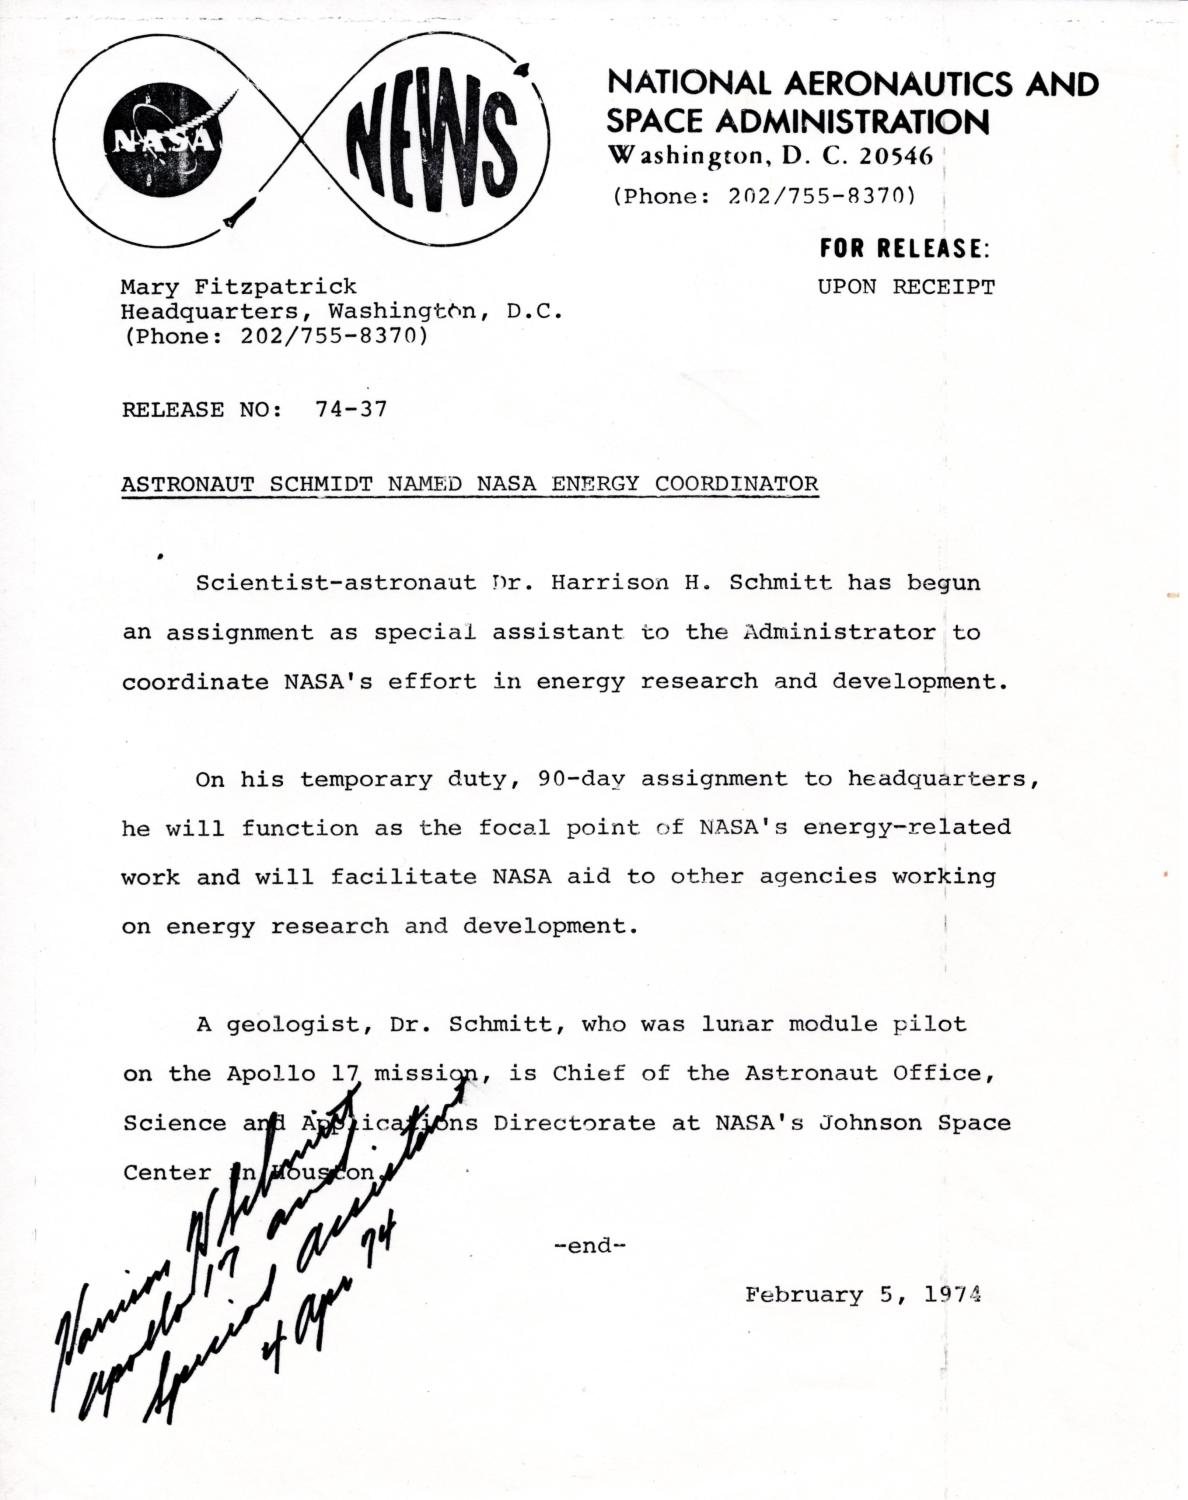 NASA NEWS RELEASE SIGNED BY APOLLO ASTRONAUT